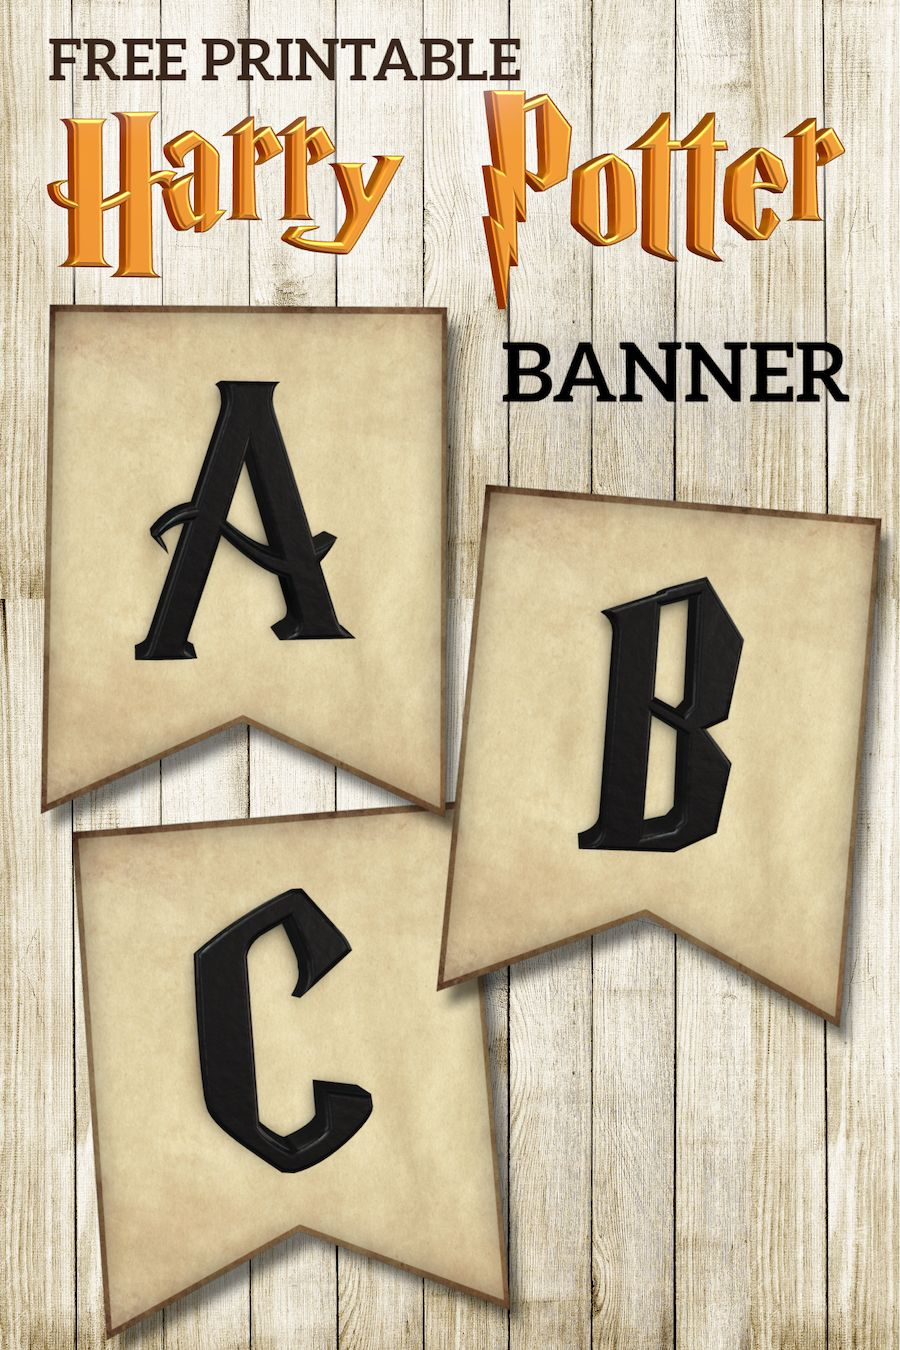 Free Printable Harry Potter Banner Letters Paper Trail Design Harry Potter Printables Free Harry Potter Banner Harry Potter Free